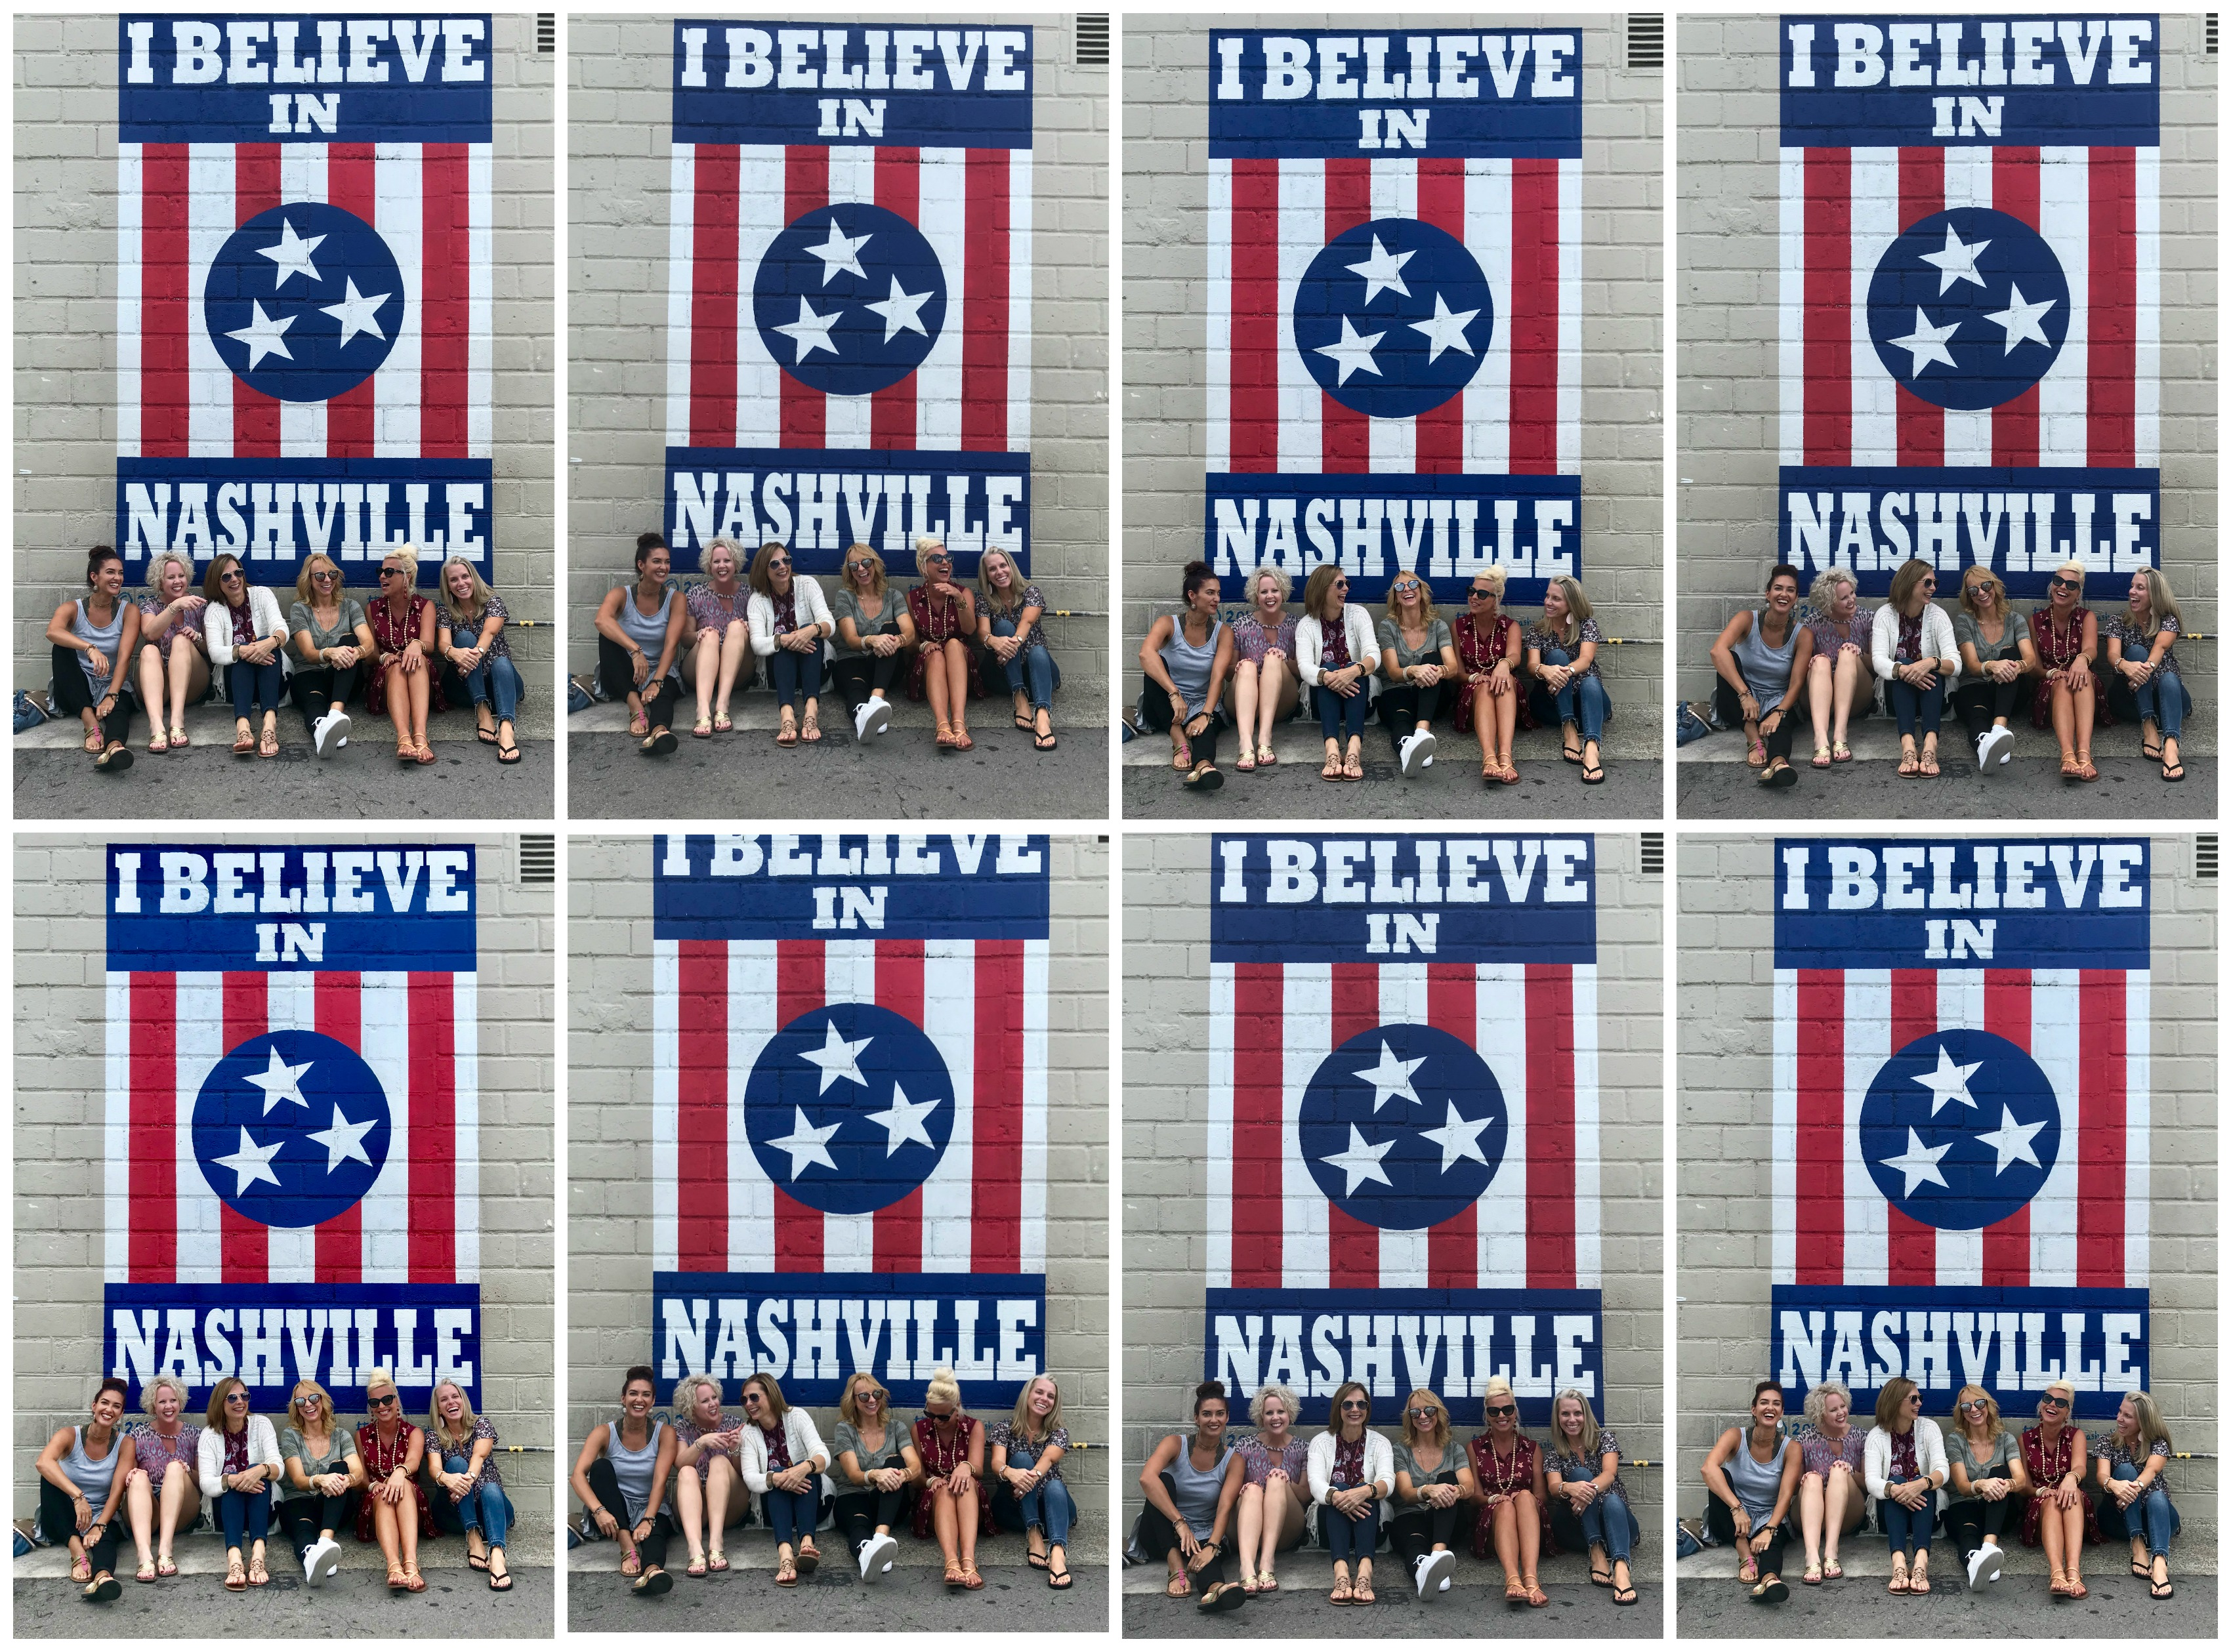 Nashville Murals, Bloggers, I believe in Nashville